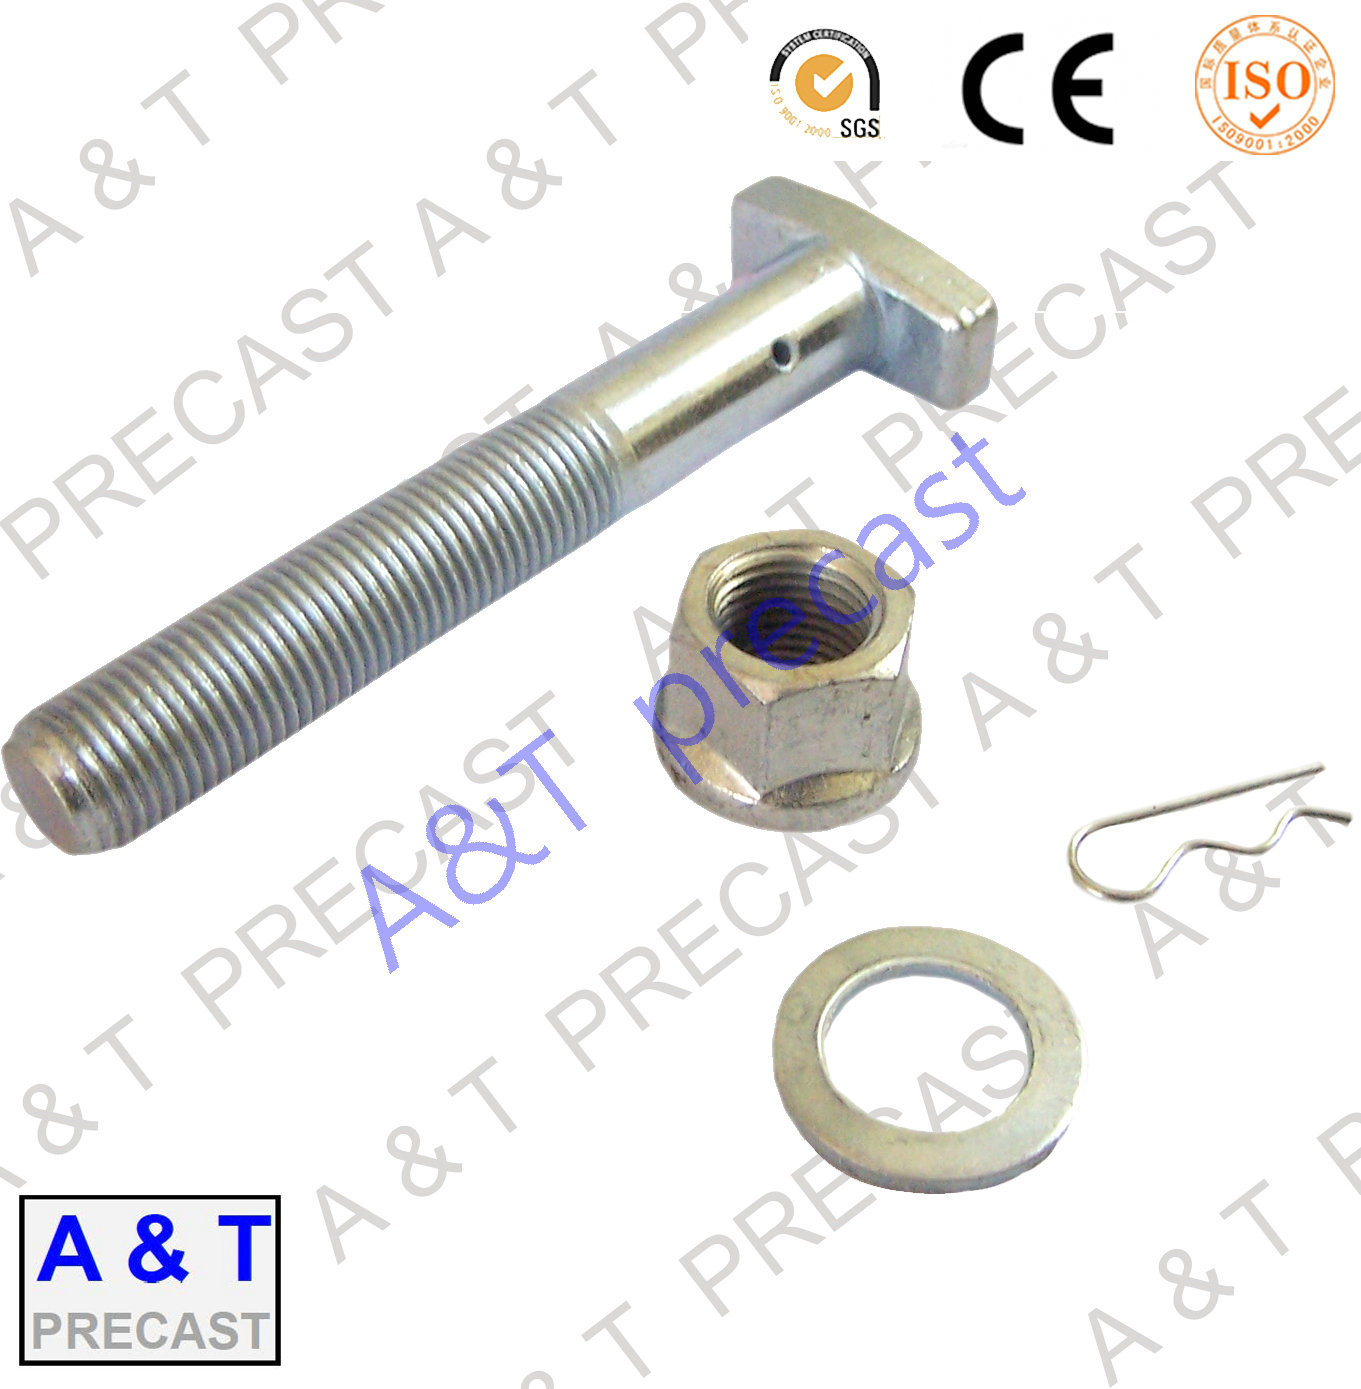 Carbon Steel, Stainless Steel/Square/ T Head Bolt Parts with Hex Nut and Washer